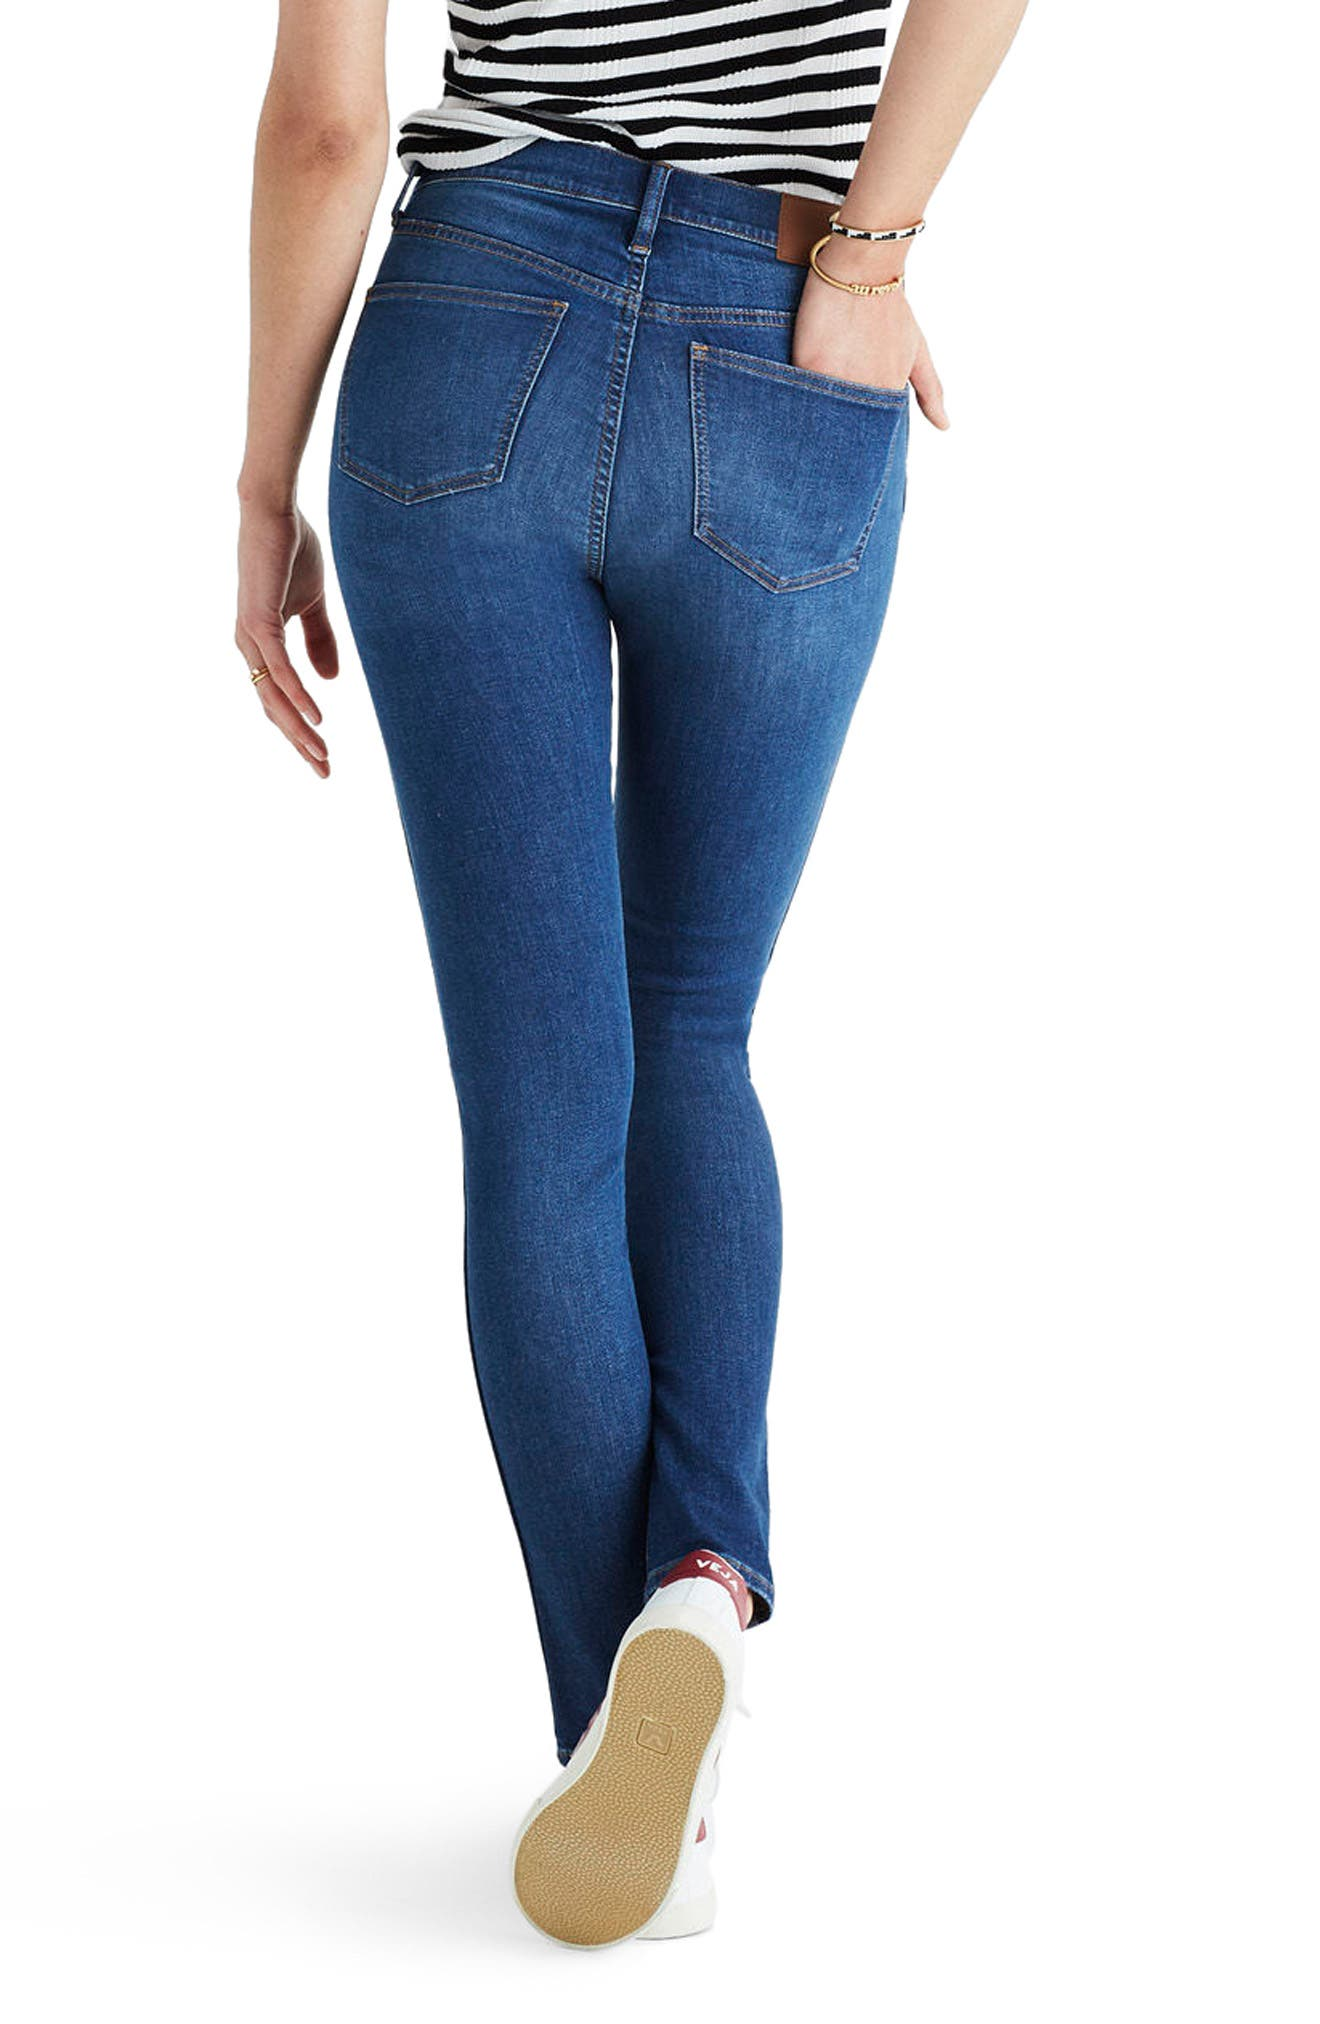 9-Inch High Waist Skinny Jeans,                             Alternate thumbnail 2, color,                             Patty Wash